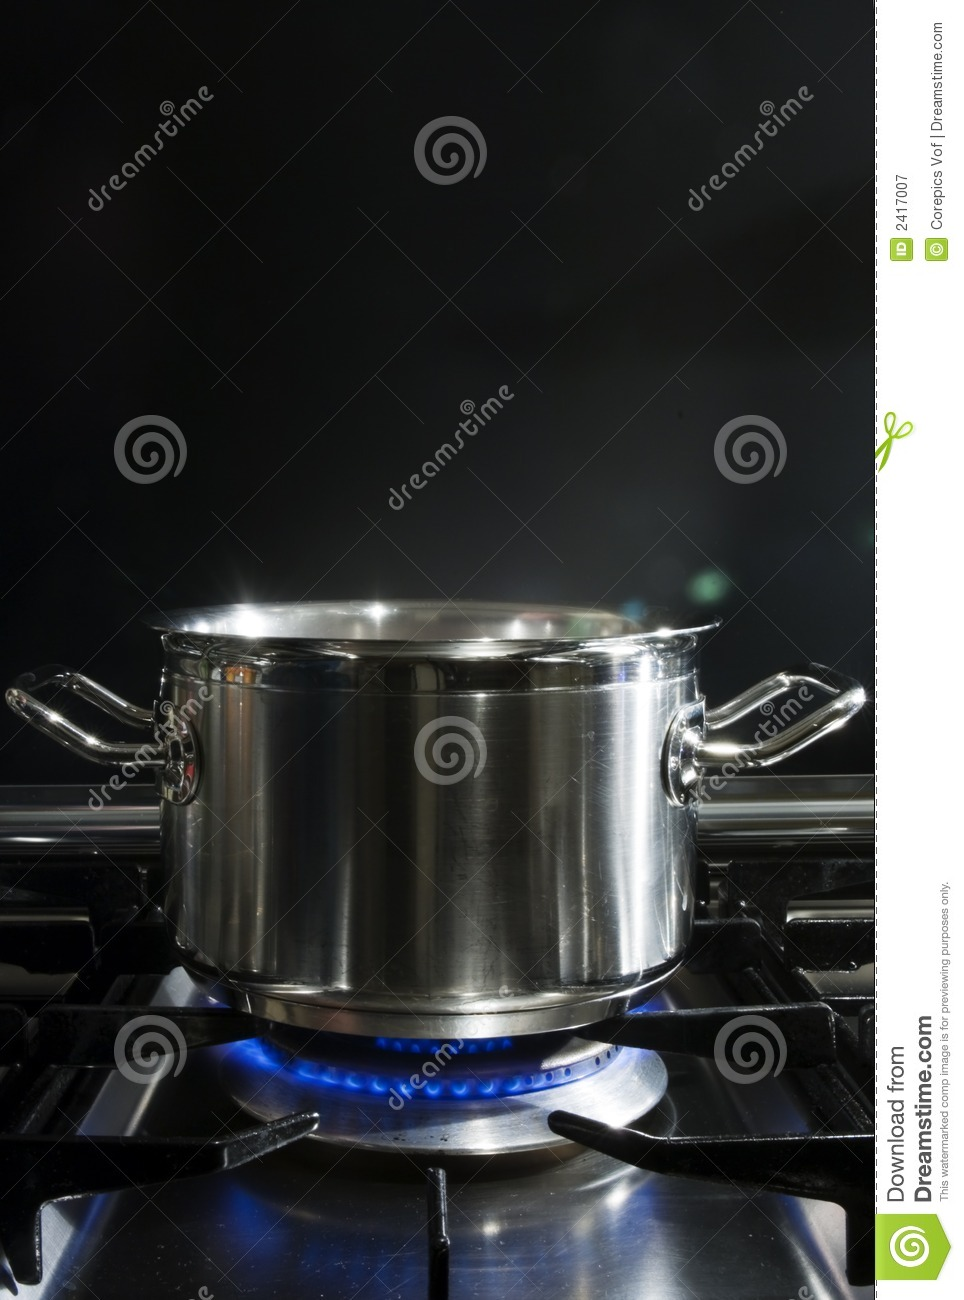 Cooking on Gaz